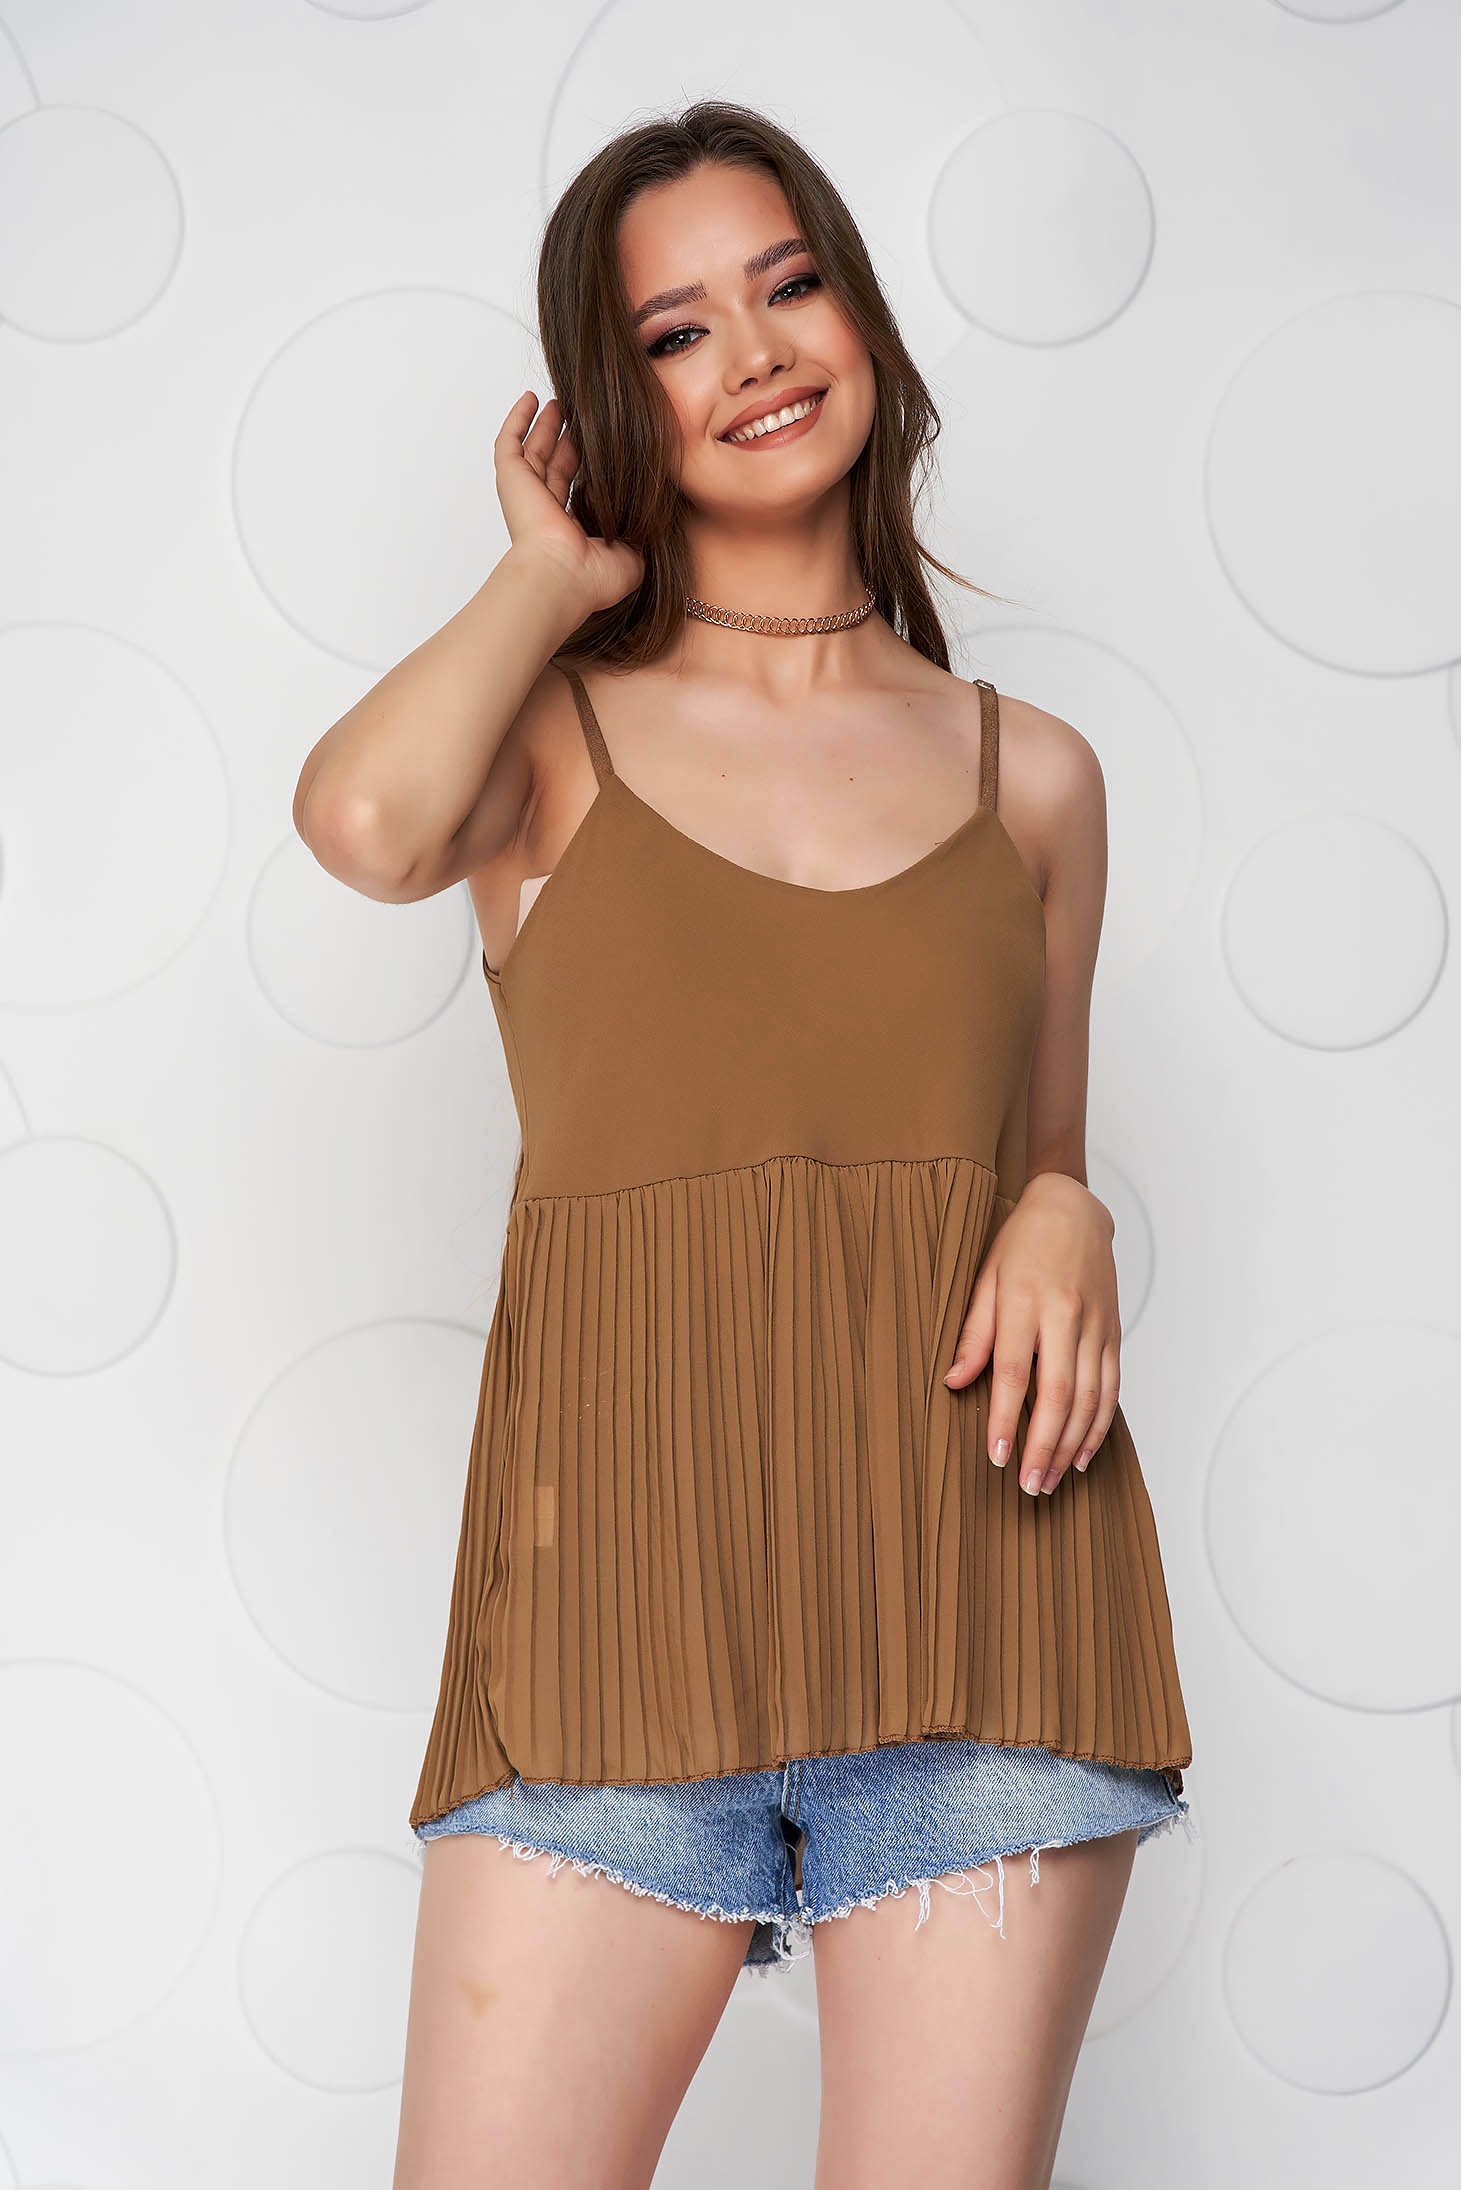 Brown top shirt loose fit folded up from veil fabric with straps